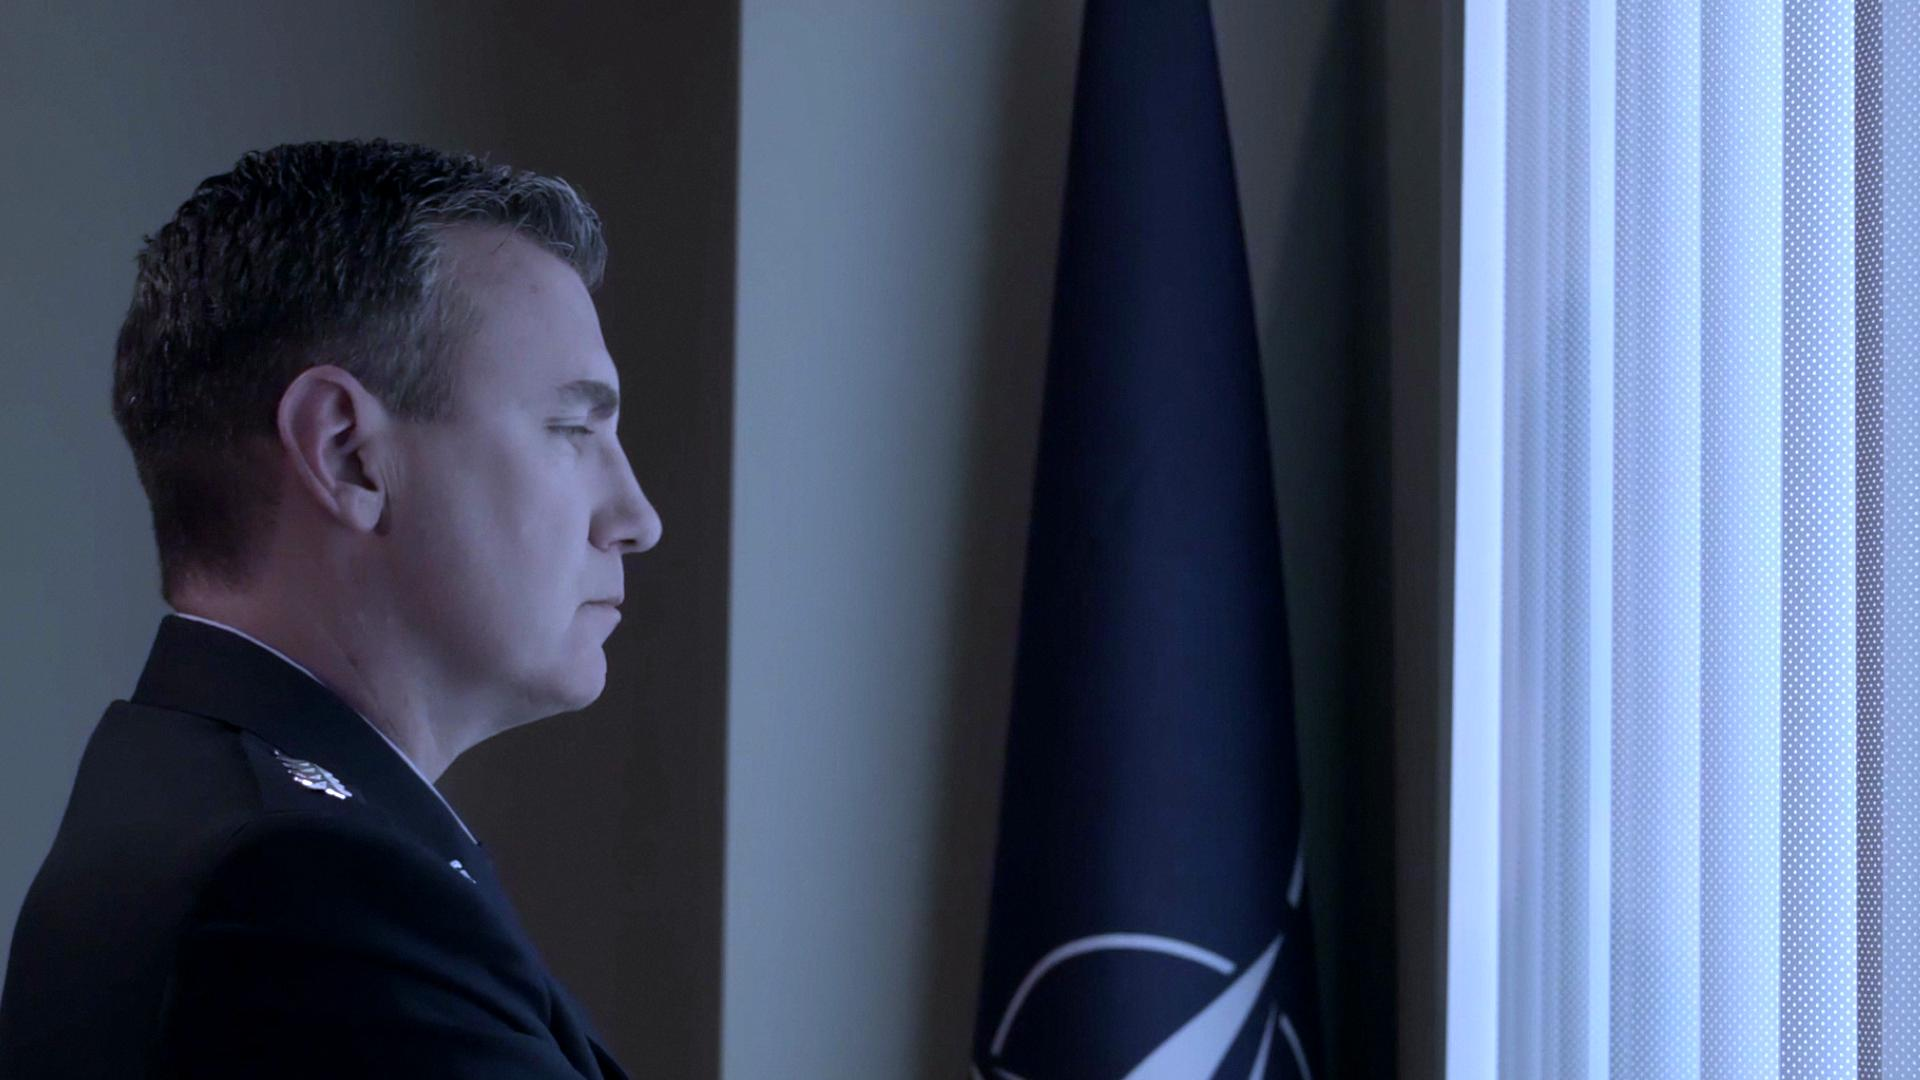 Paul Noonan in First Signal